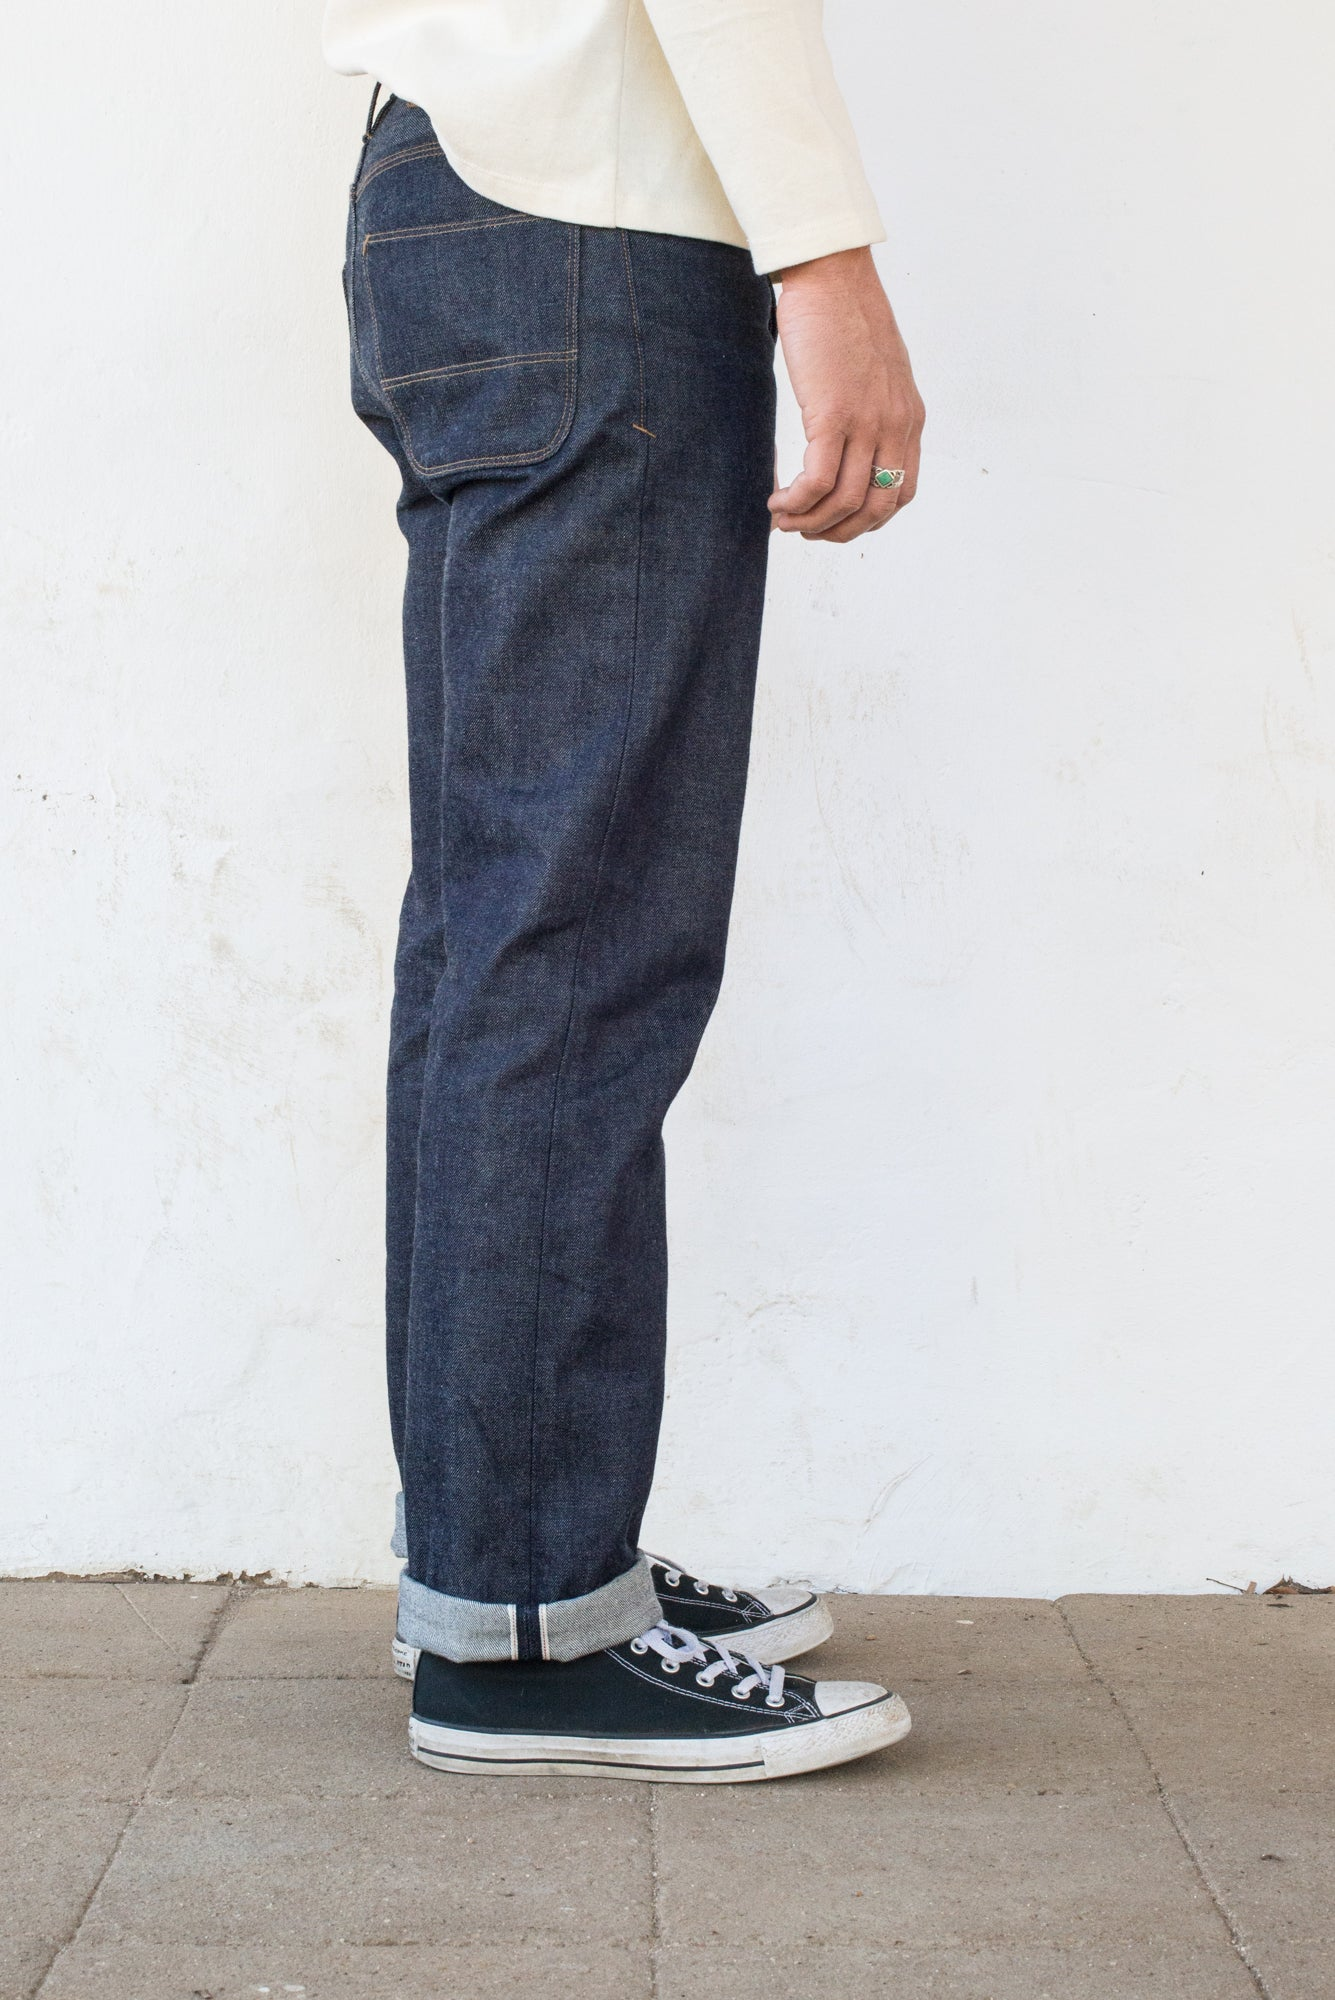 Freenote Cloth | Belford Straight 15 ounce Indigo | $265